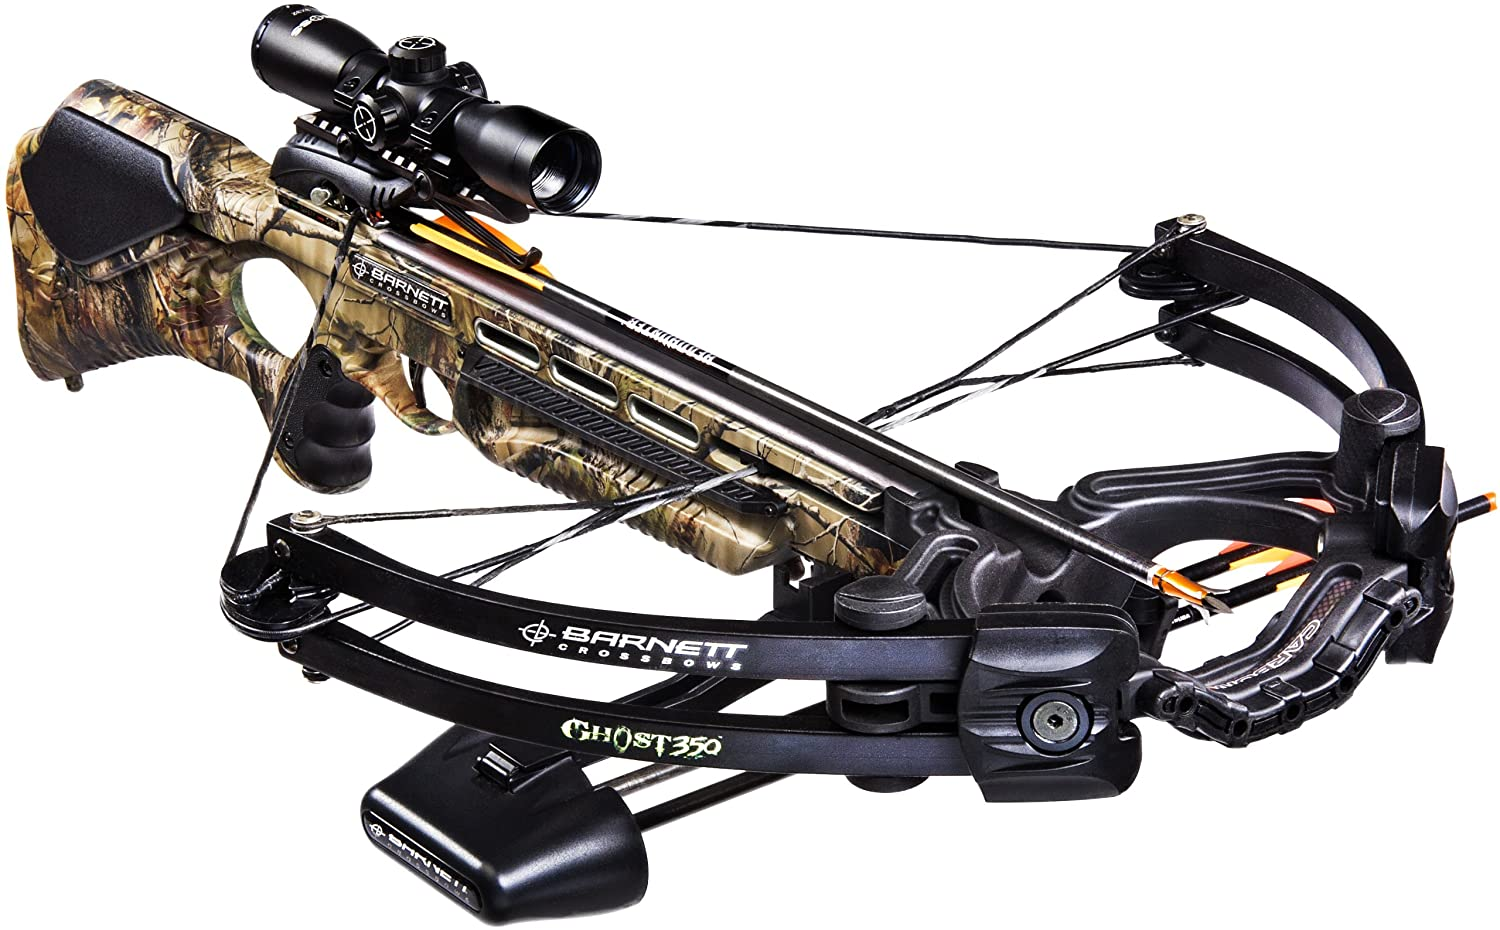 Barnett Ghost 350 CRT Crossbow Package Quiver, 3 – 20-Inch Arrows and Illuminated 3x32mm Scope